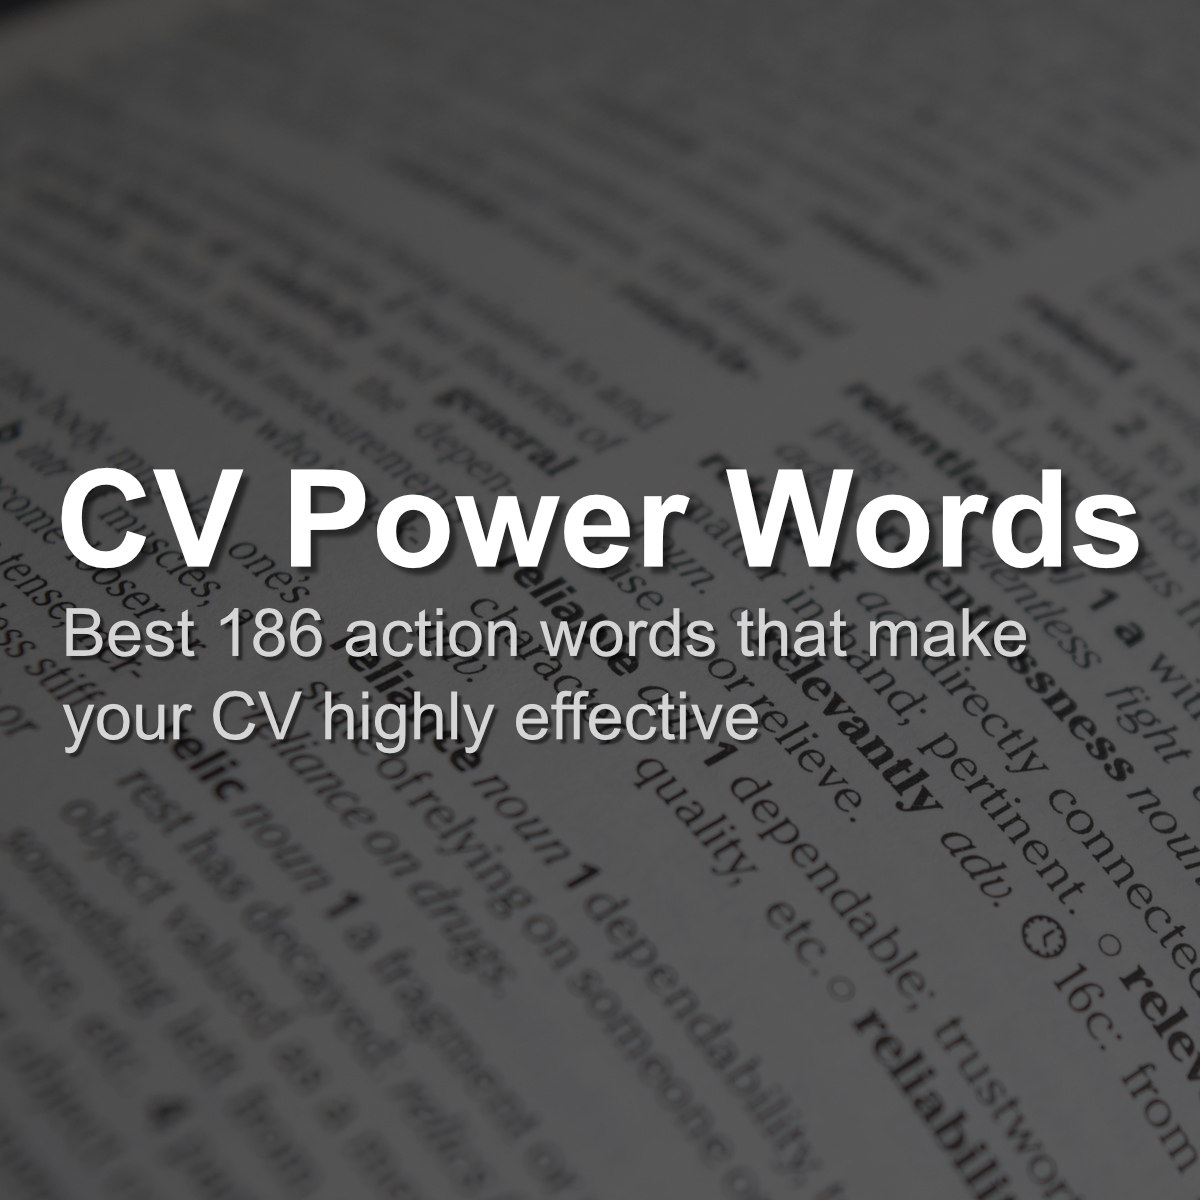 Best 186 CV Power Words that will make your CV highly effective